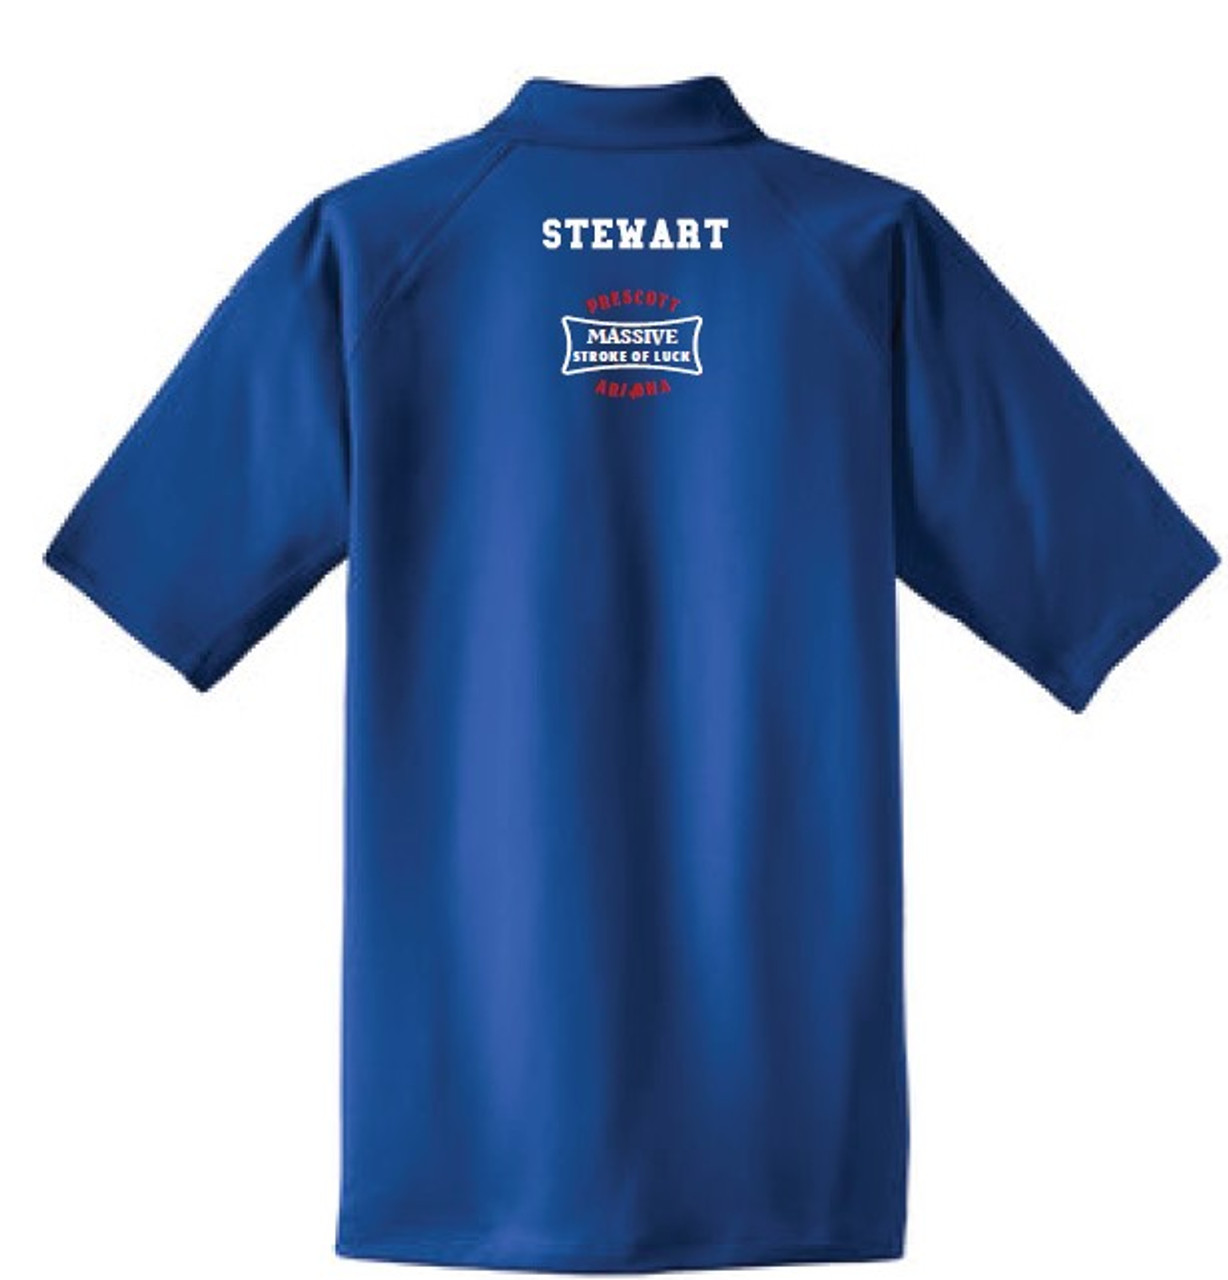 Massive Stroke of Luck Team Shirt | High Desert Cup